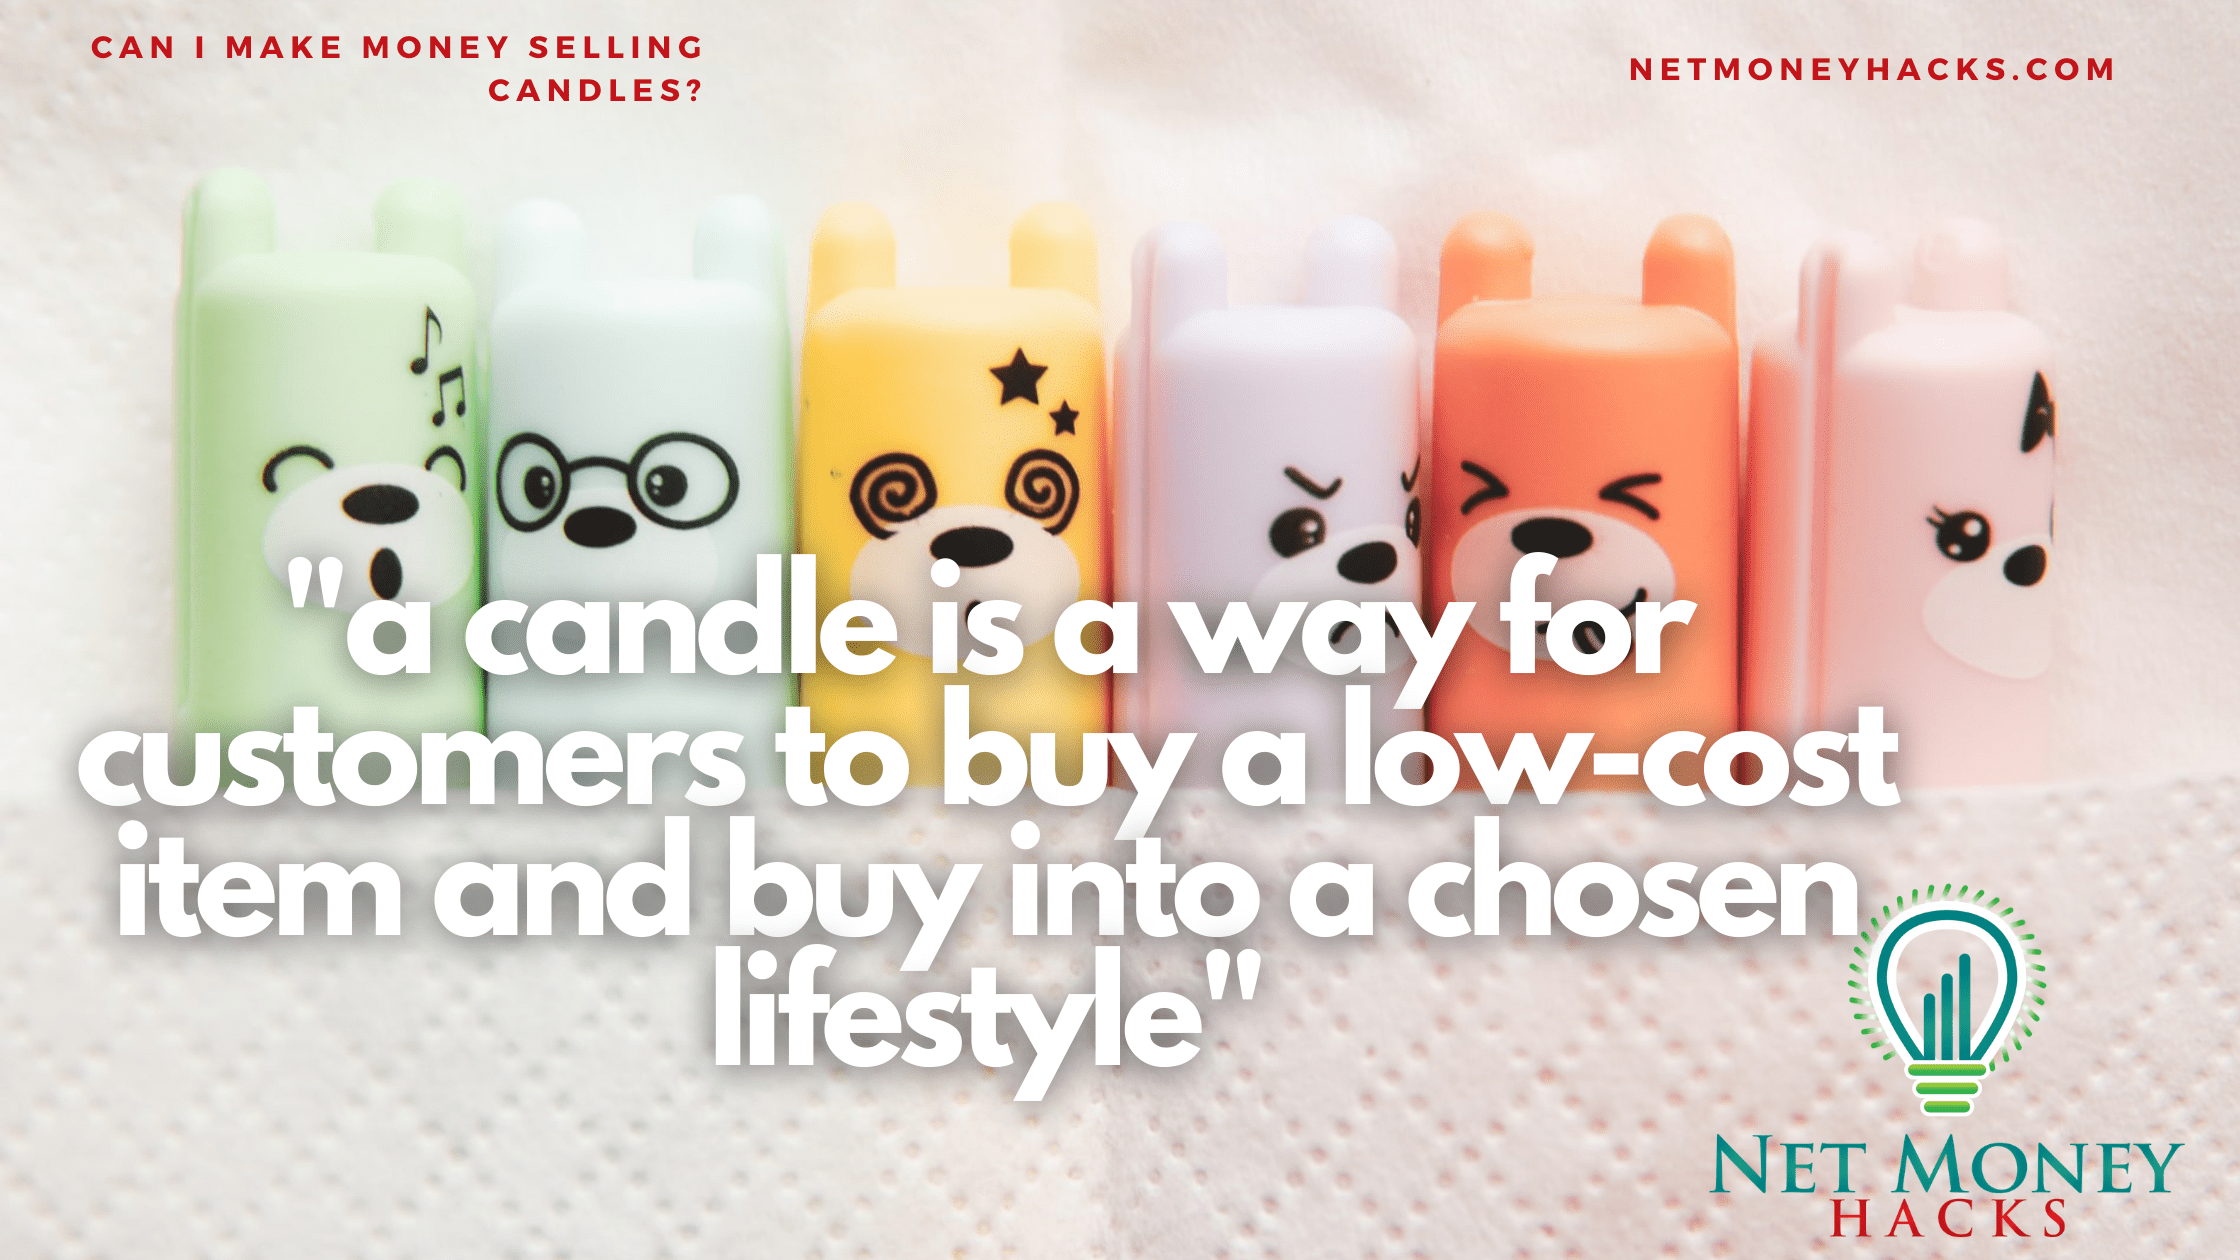 Candle can be used to identify with culture